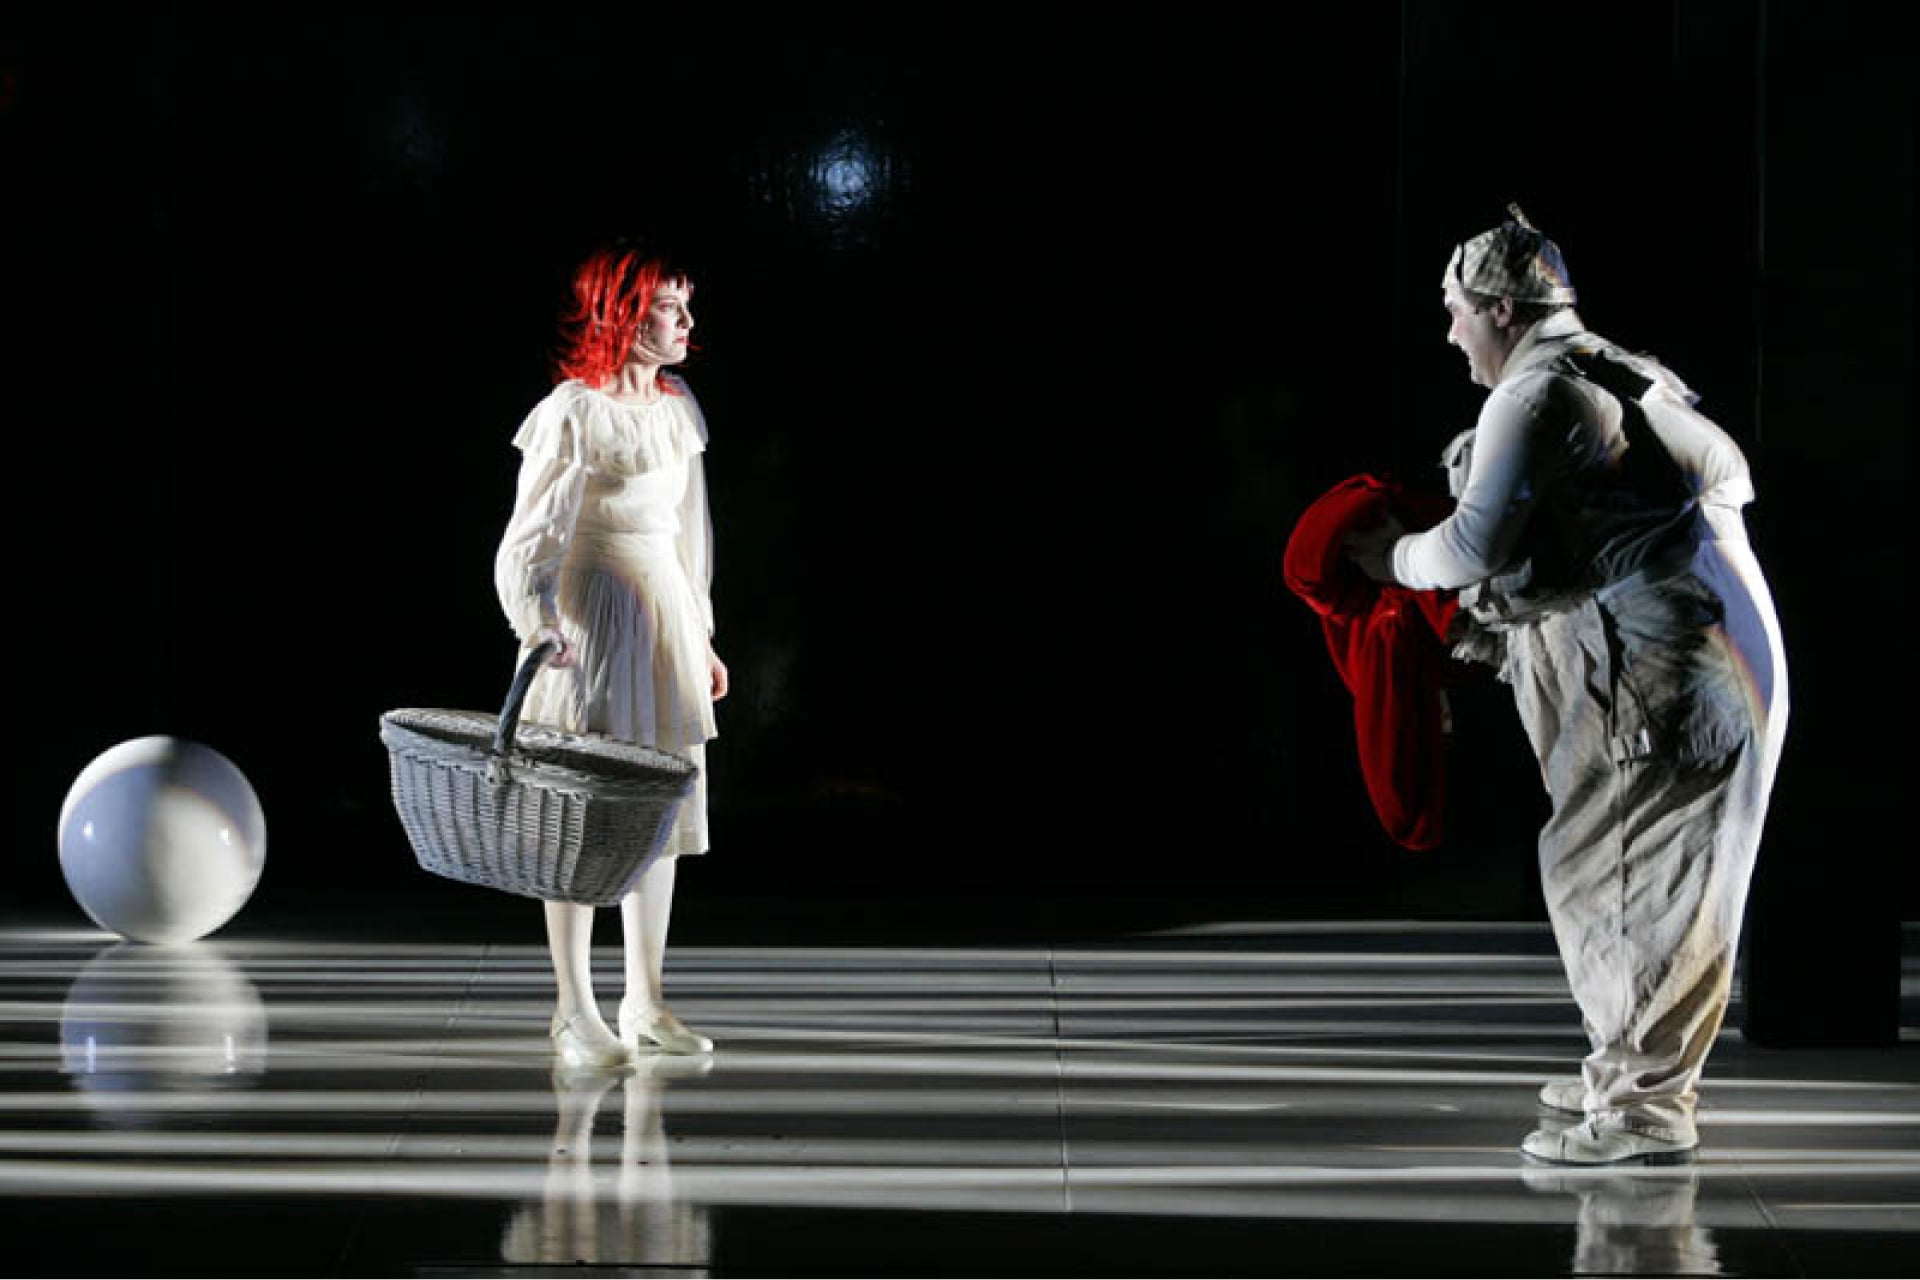 Red-headed girl in white dress carrying basket and man in checkered cap with red cape stand on white floor streaked with shadows near white ball.